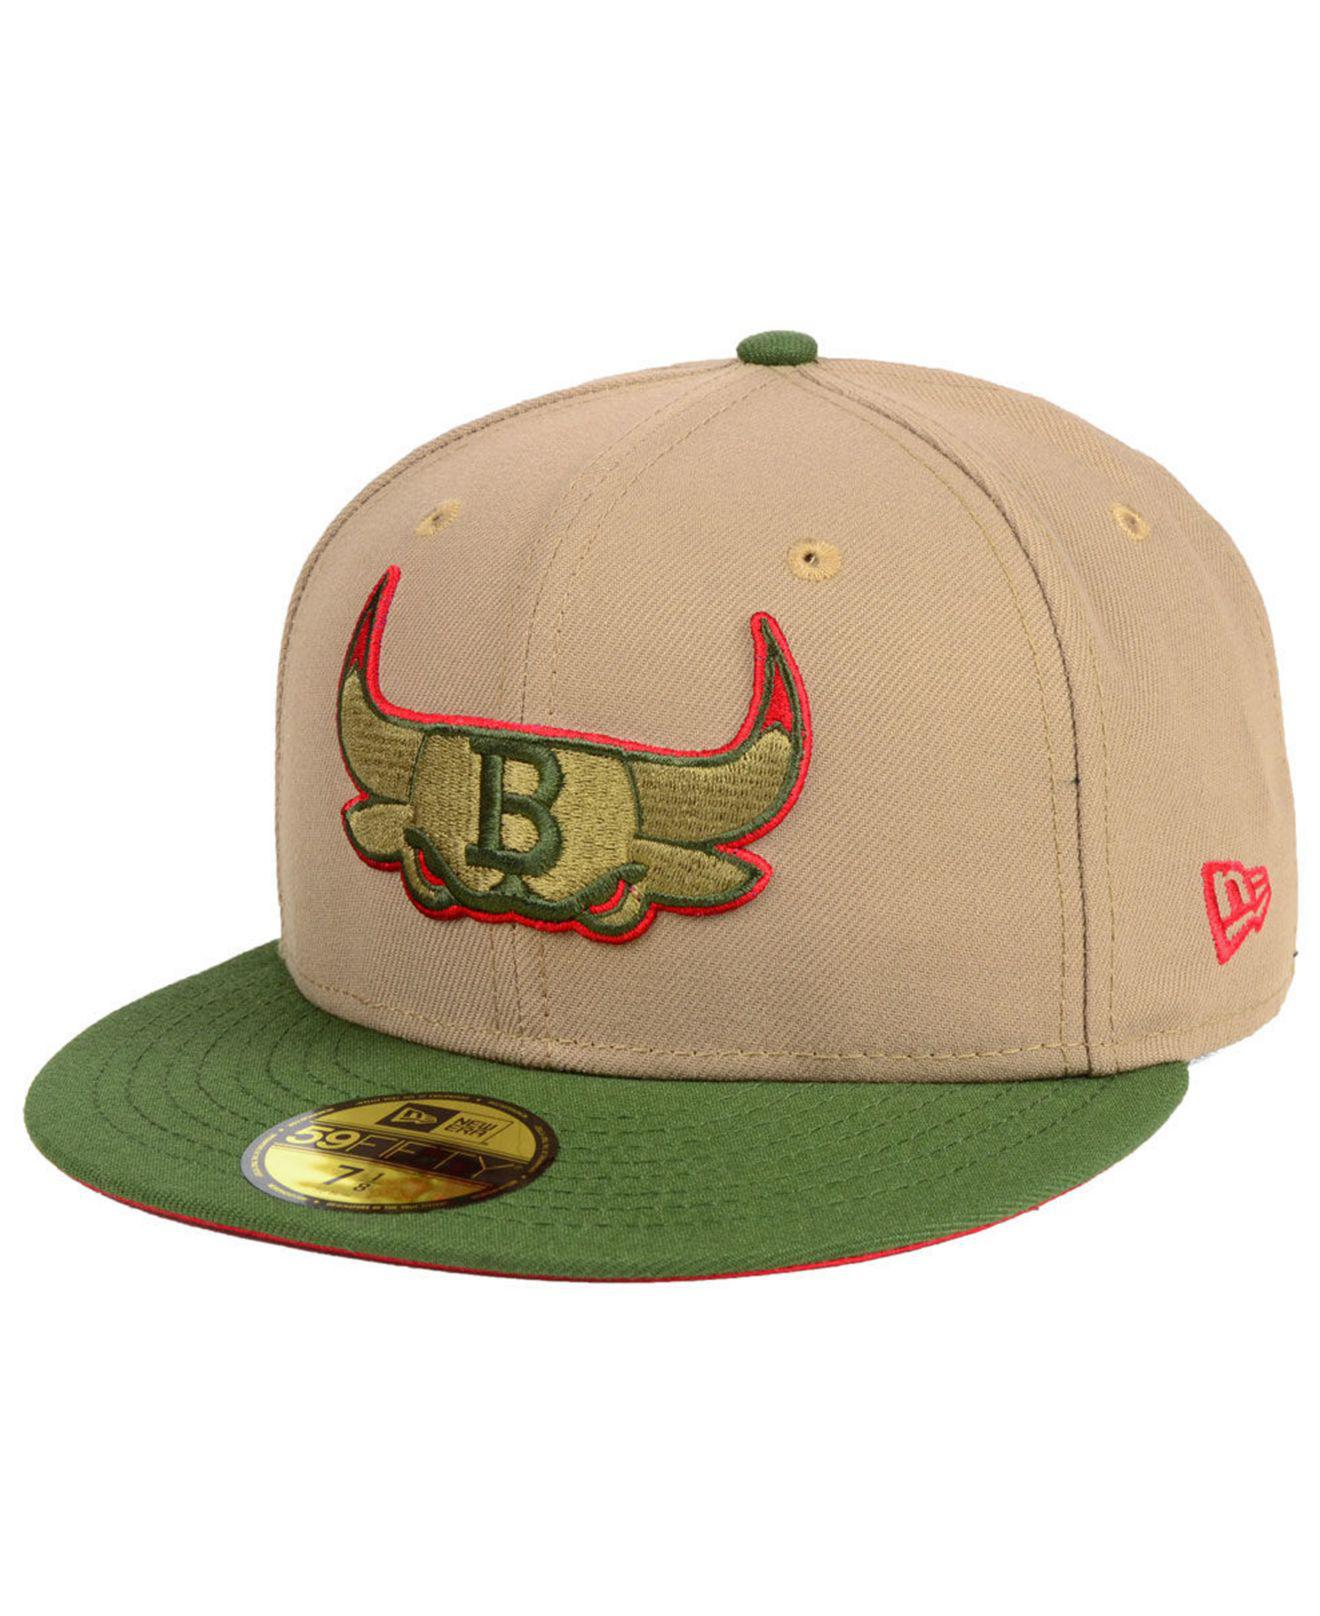 factory price b2ce1 f9521 KTZ - Green Chicago Bulls Fall 2 Tone Combo 59fifty-fitted Cap for Men -.  View fullscreen